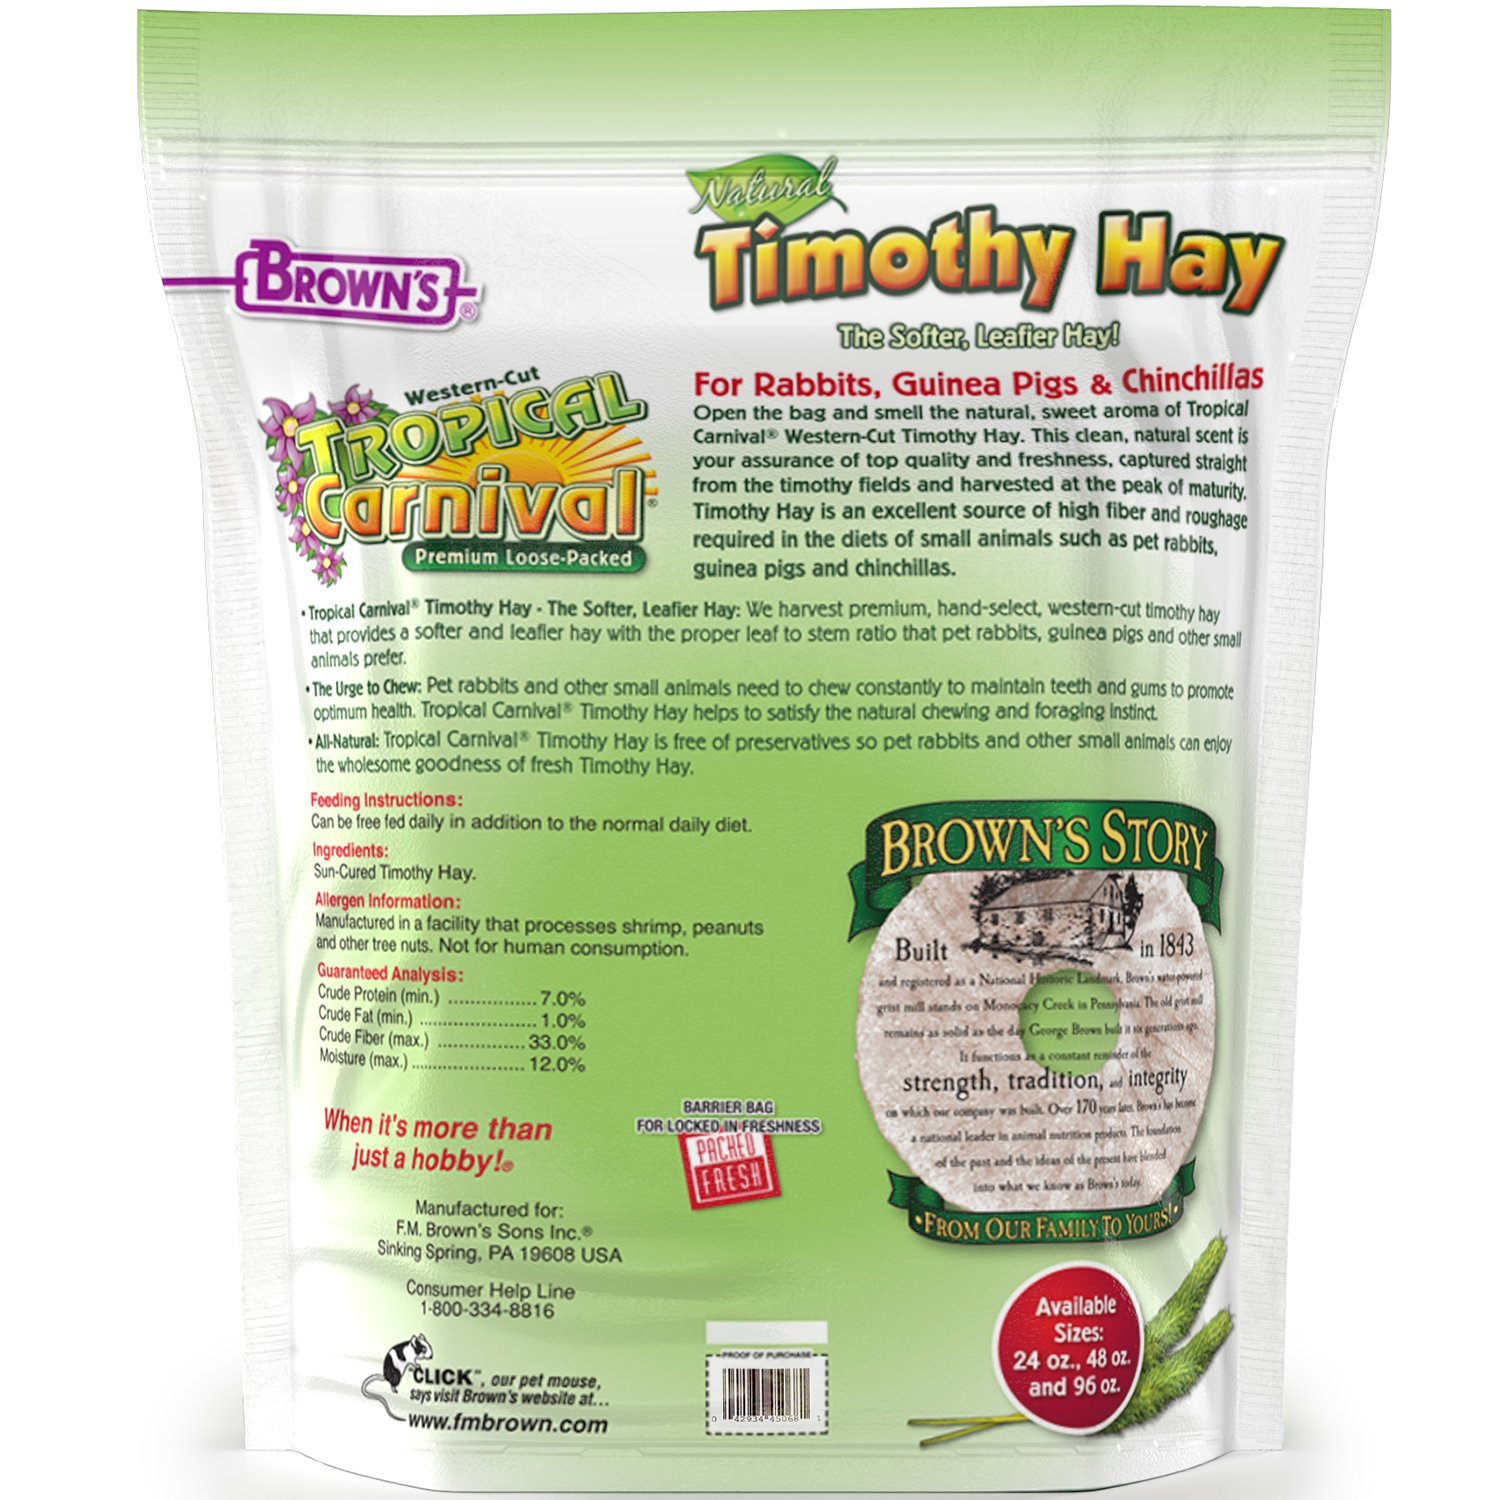 Tropical Carnival F.M. Brown's Natural Timothy Hay for Guinea Pigs, Rabbits, and Other Small Animals, with High Fiber for Healthy Digestion by Tropical Carnival (Image #2)